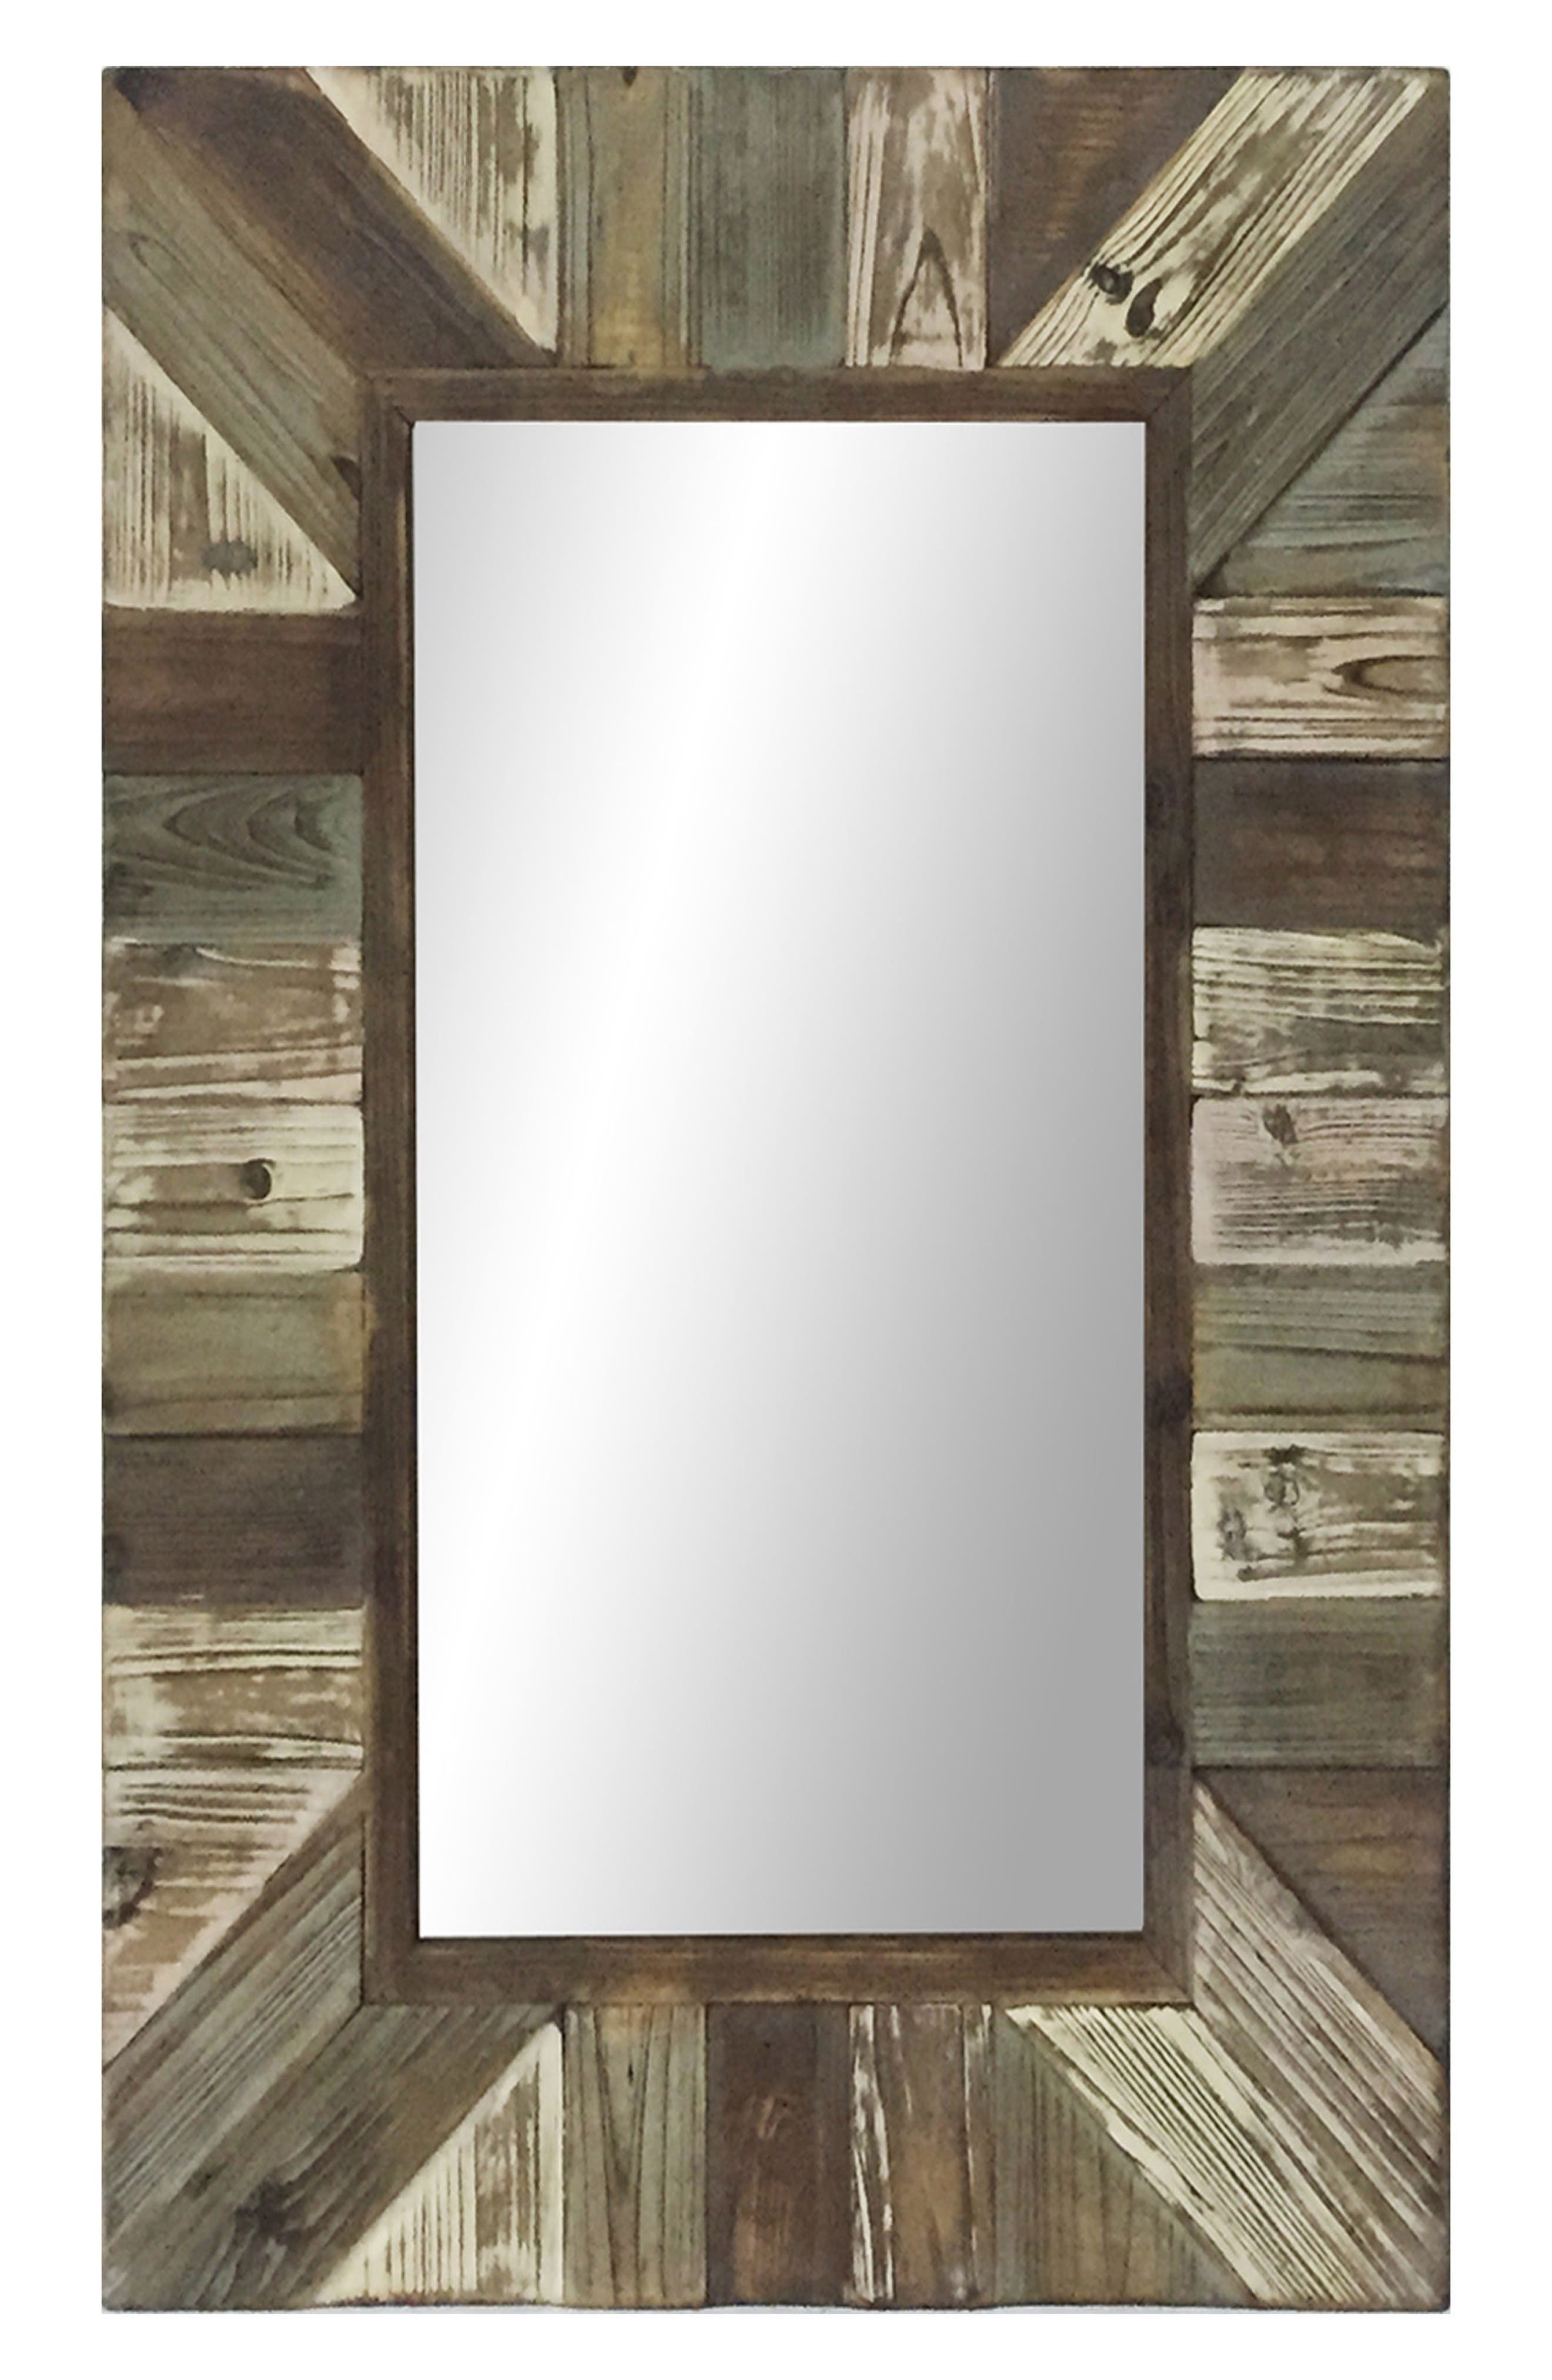 Wood Wall Mirror mirrors home decor | nordstrom | nordstrom